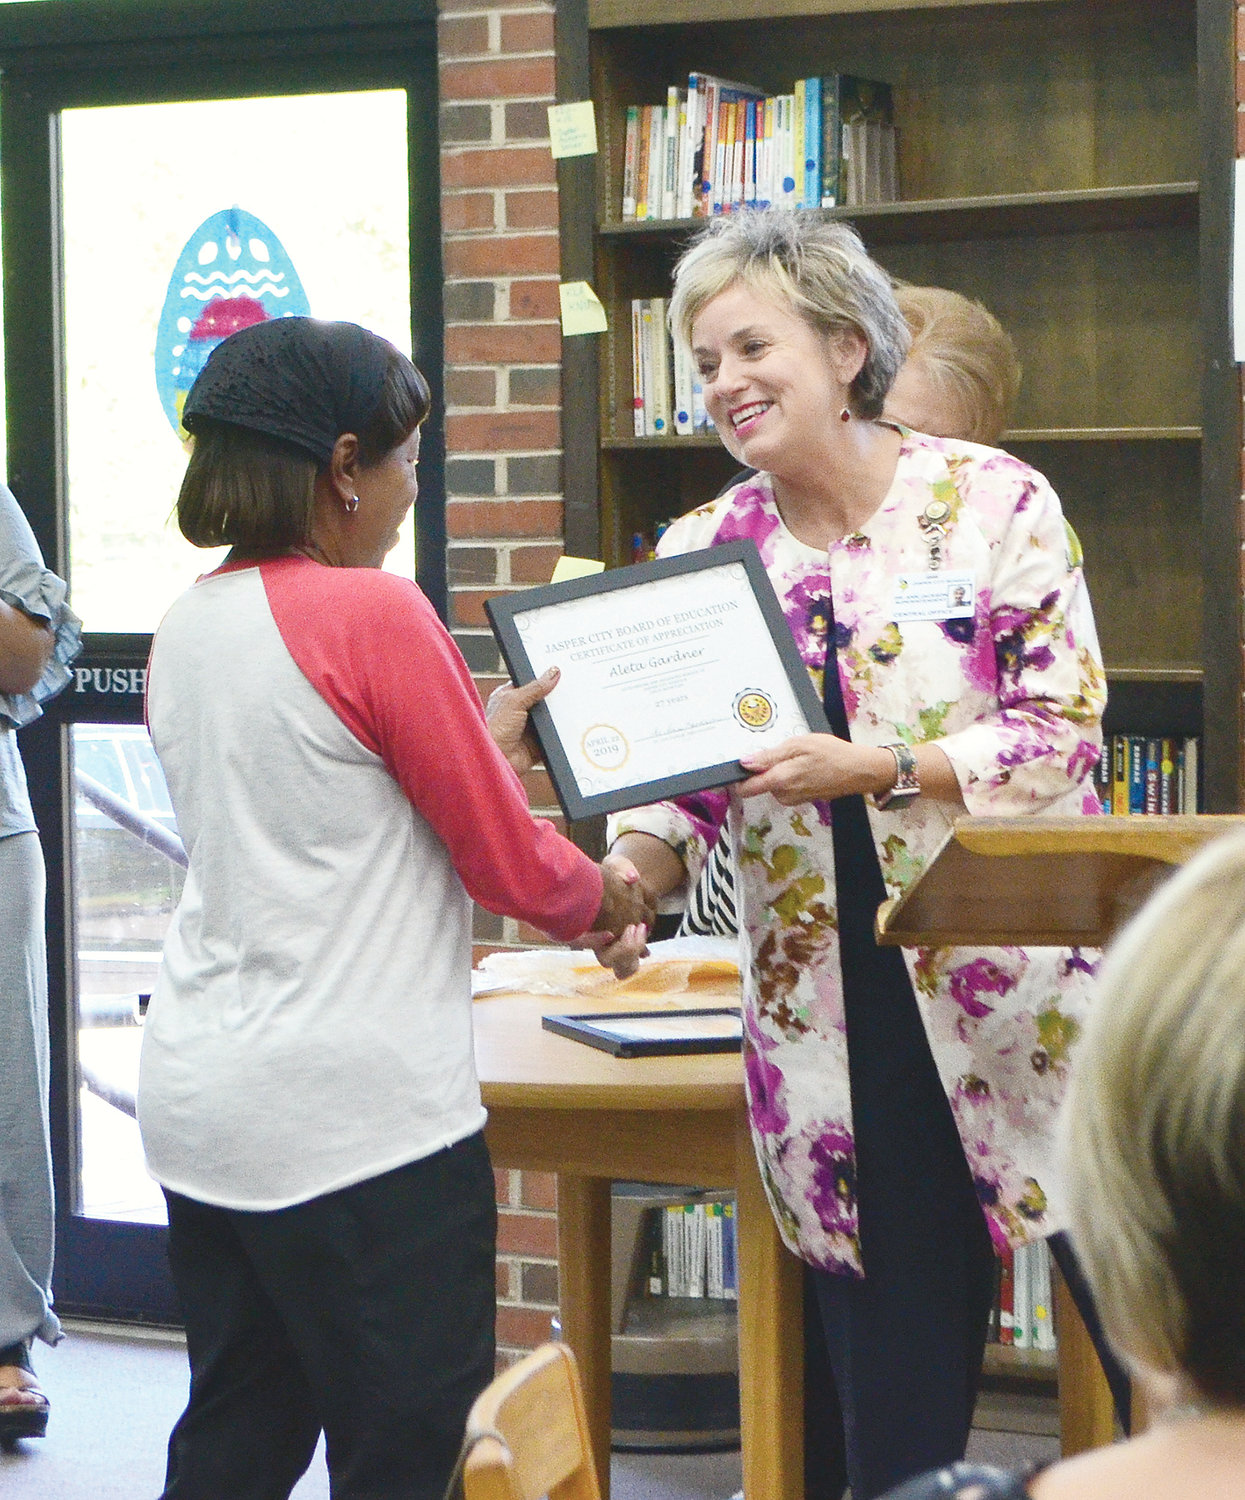 Aleta Gardner of Jasper High School was honored for 27 years of service in the CNP program.